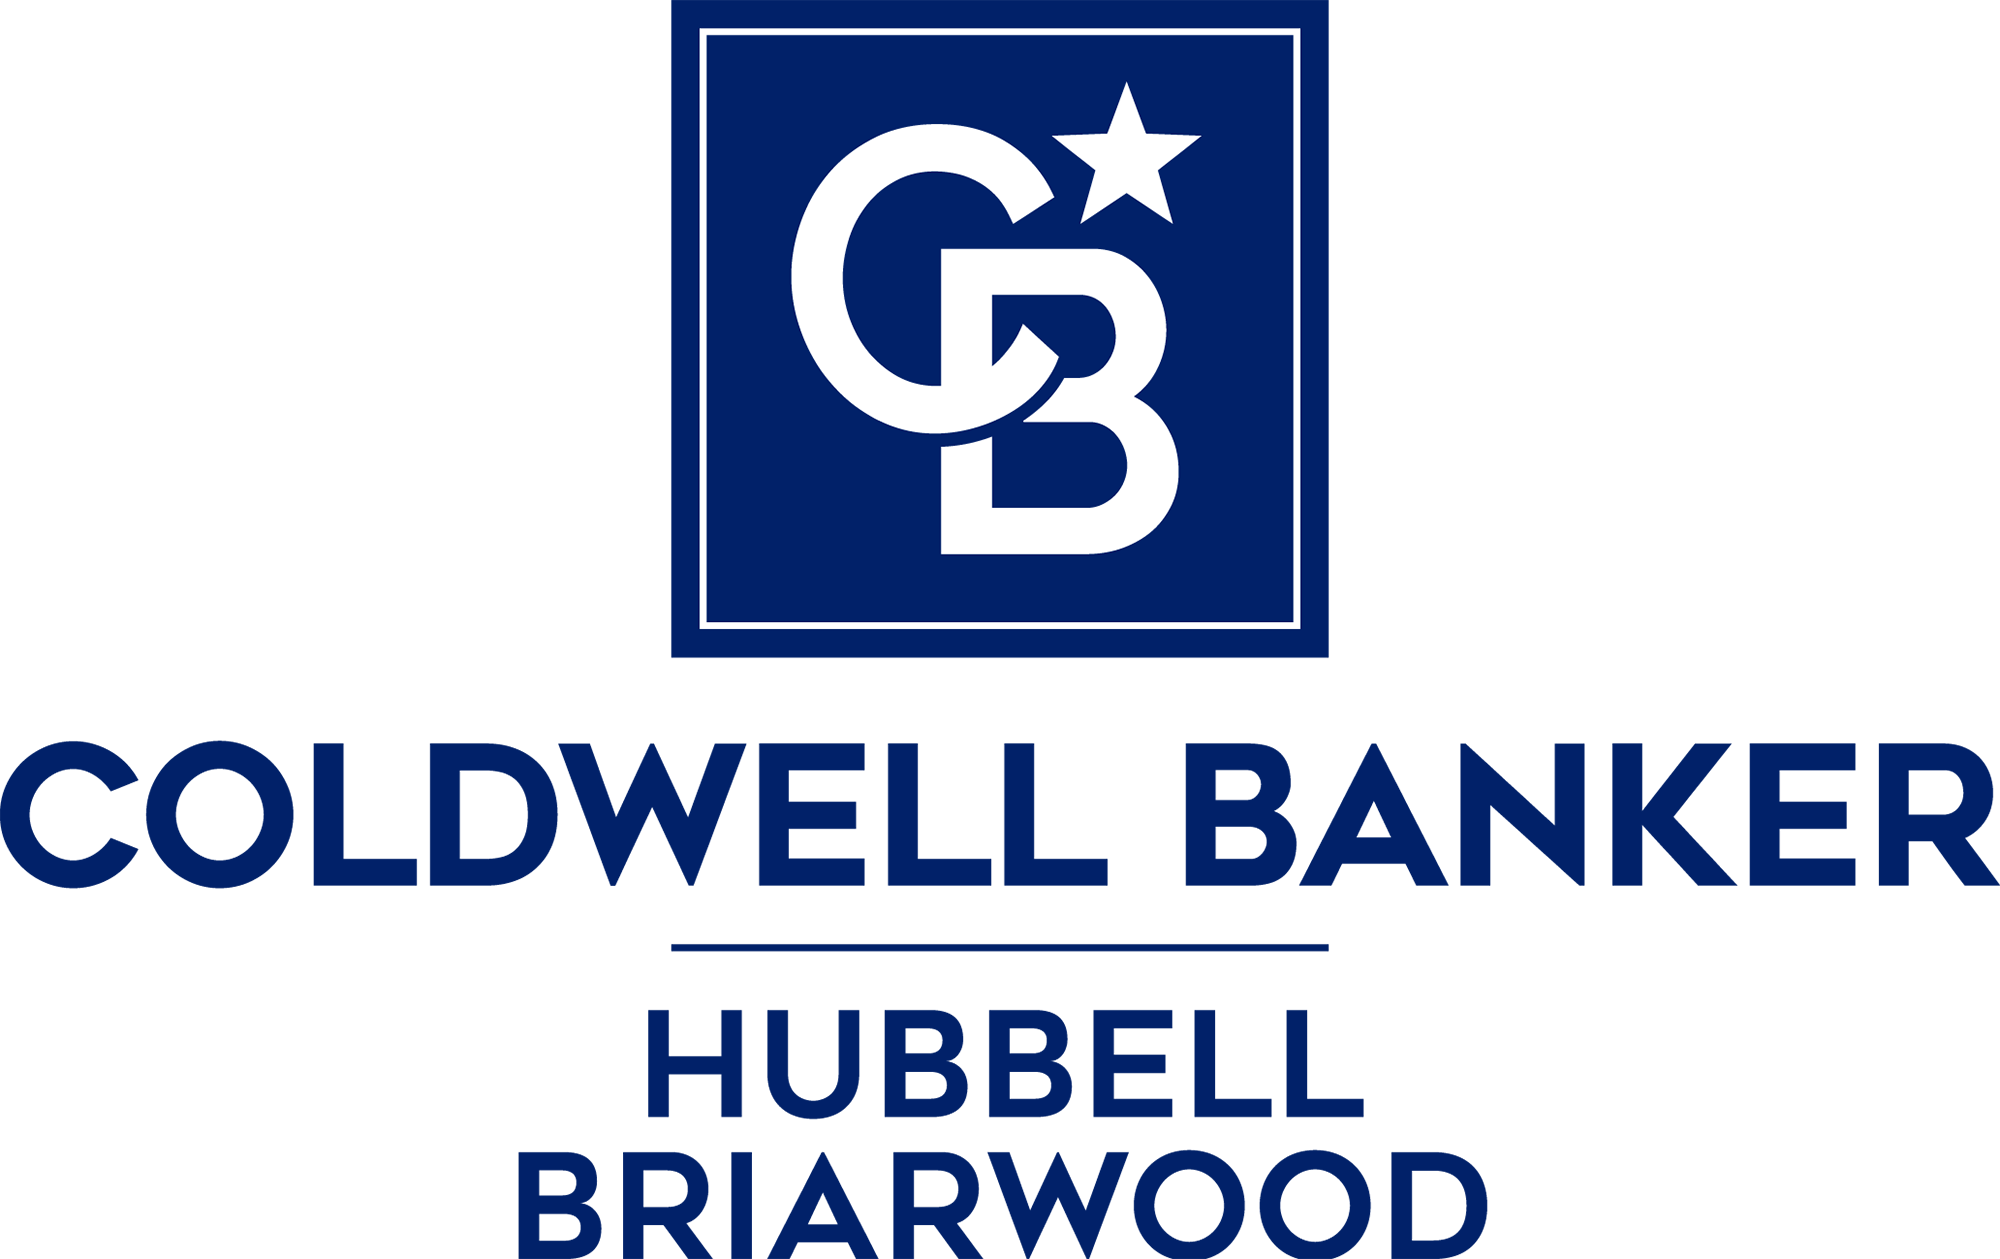 Erica McAvoy - Coldwell Banker Hubbell BriarWood Logo